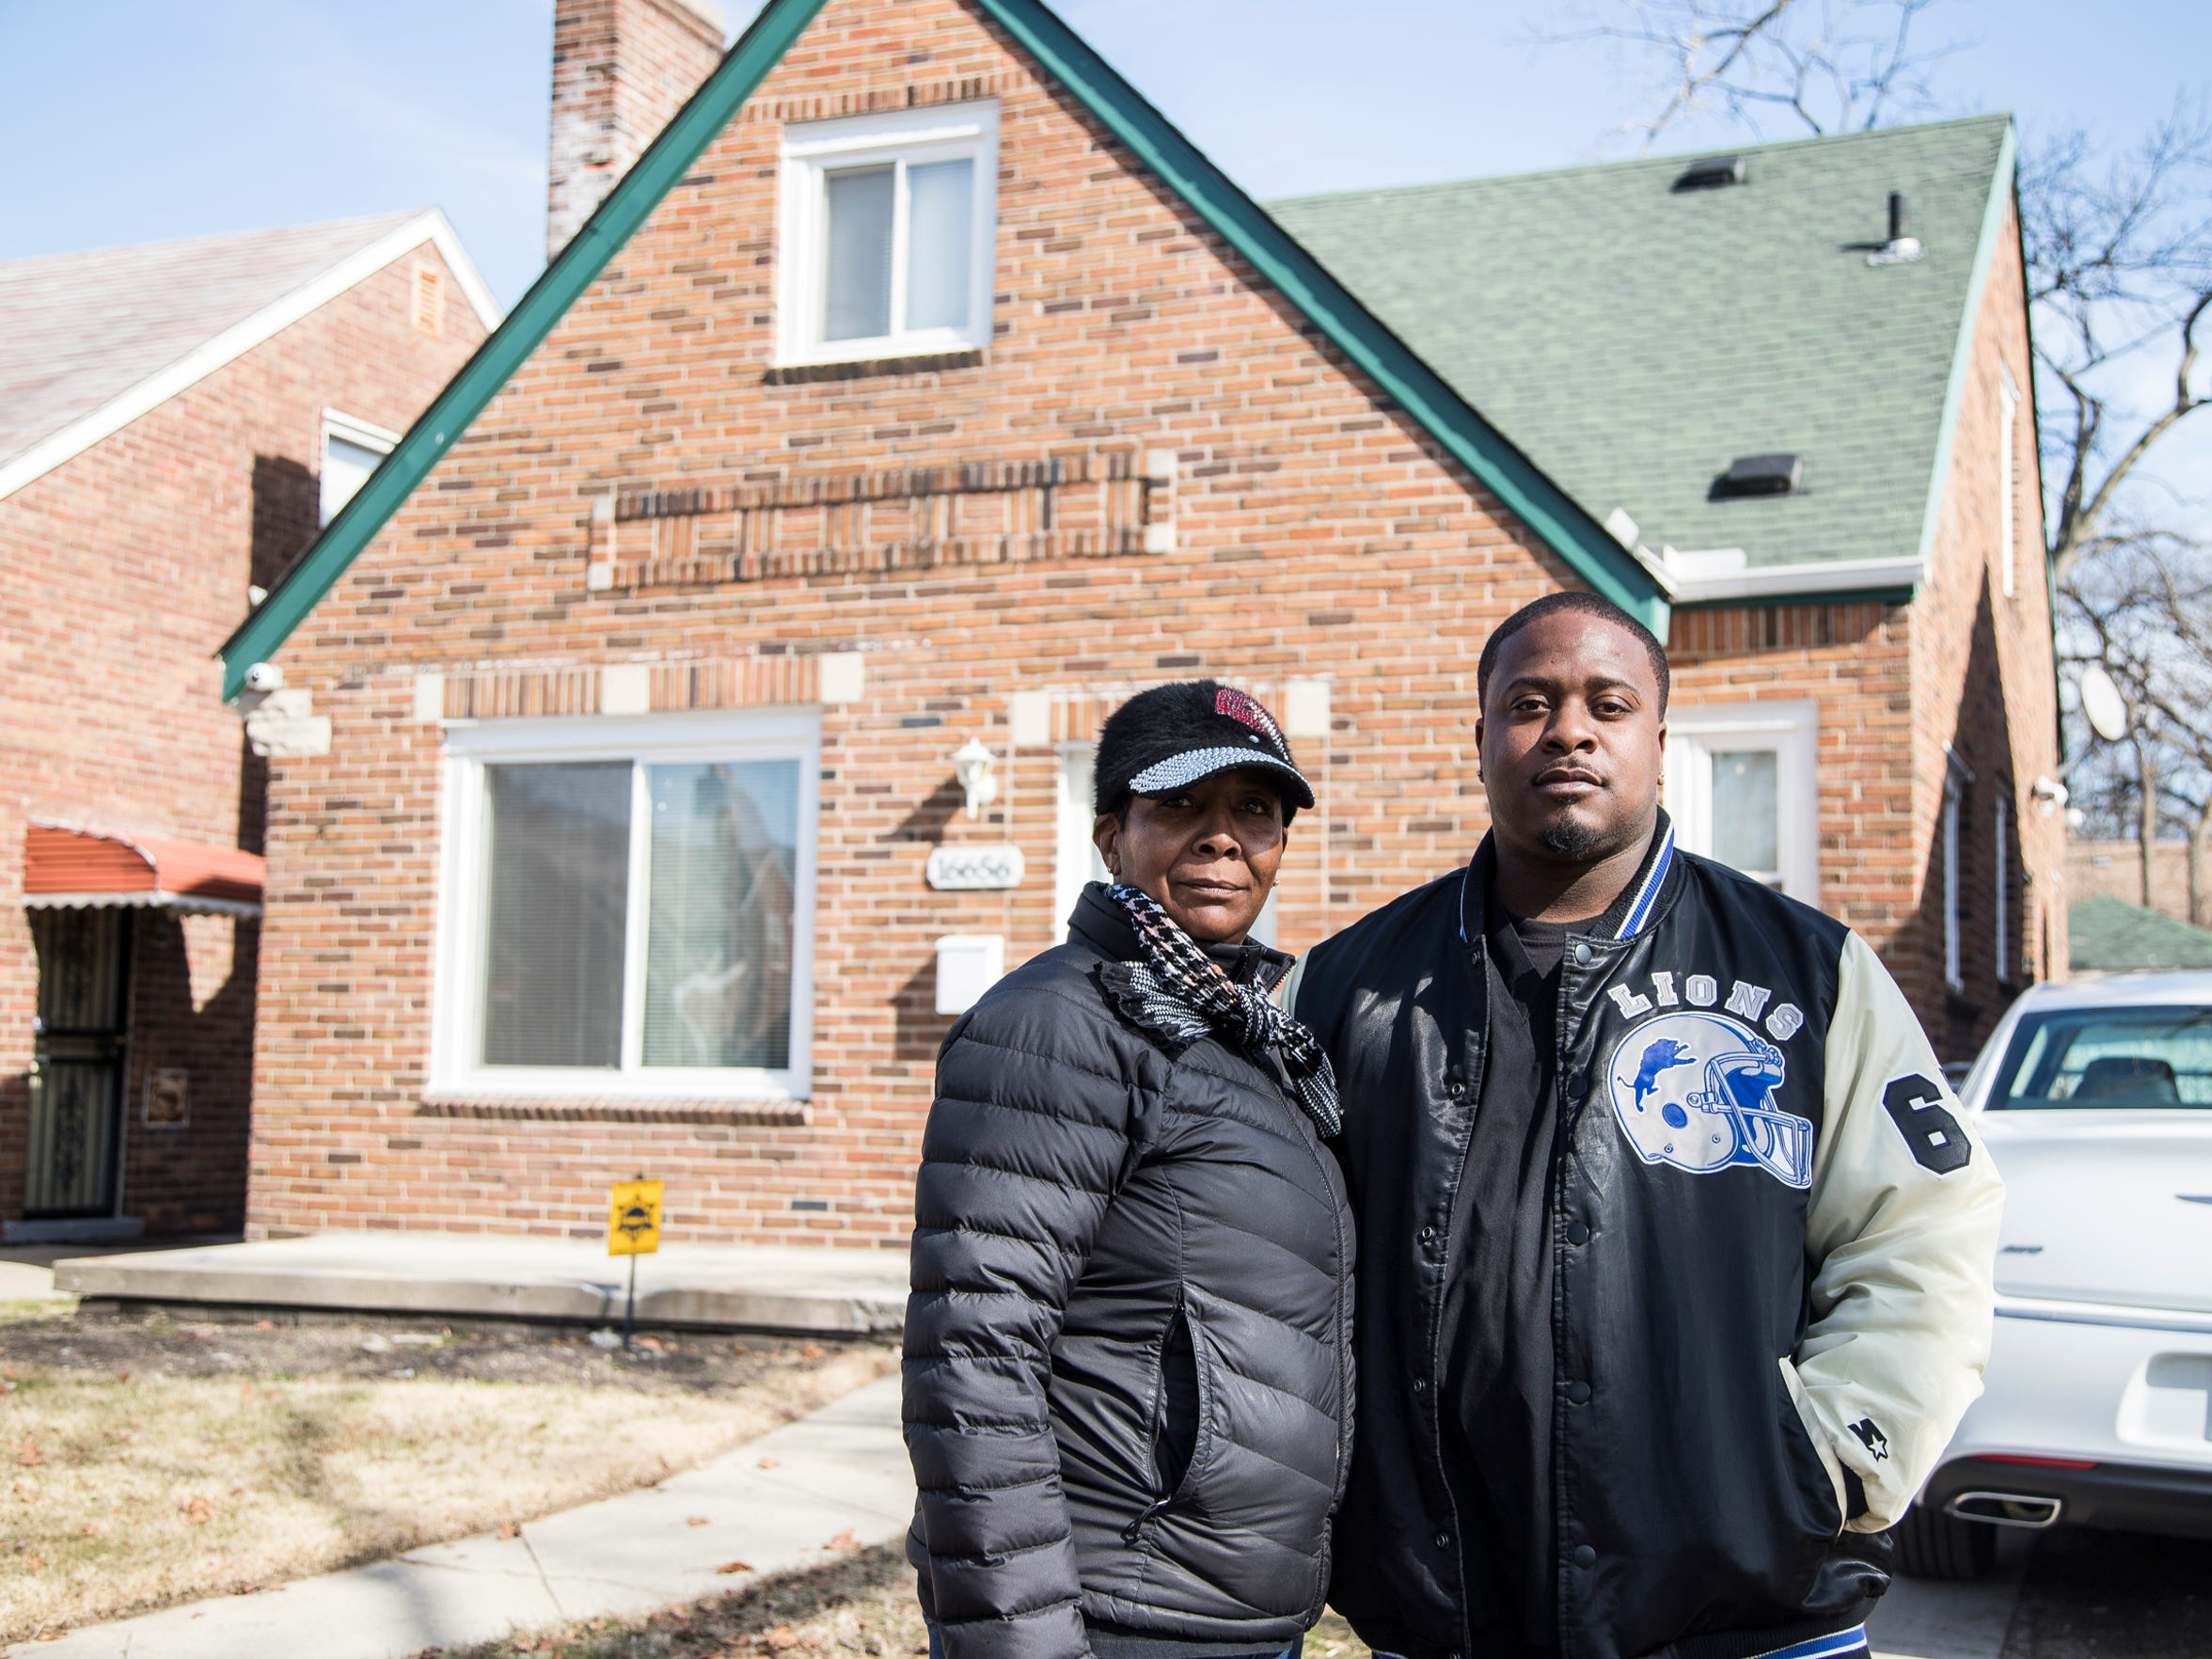 Denise Sailes and her husband, Ricky Sailes, in front of their house on Robson Street in Detroit on Tuesday, Feb. 27, 2018.